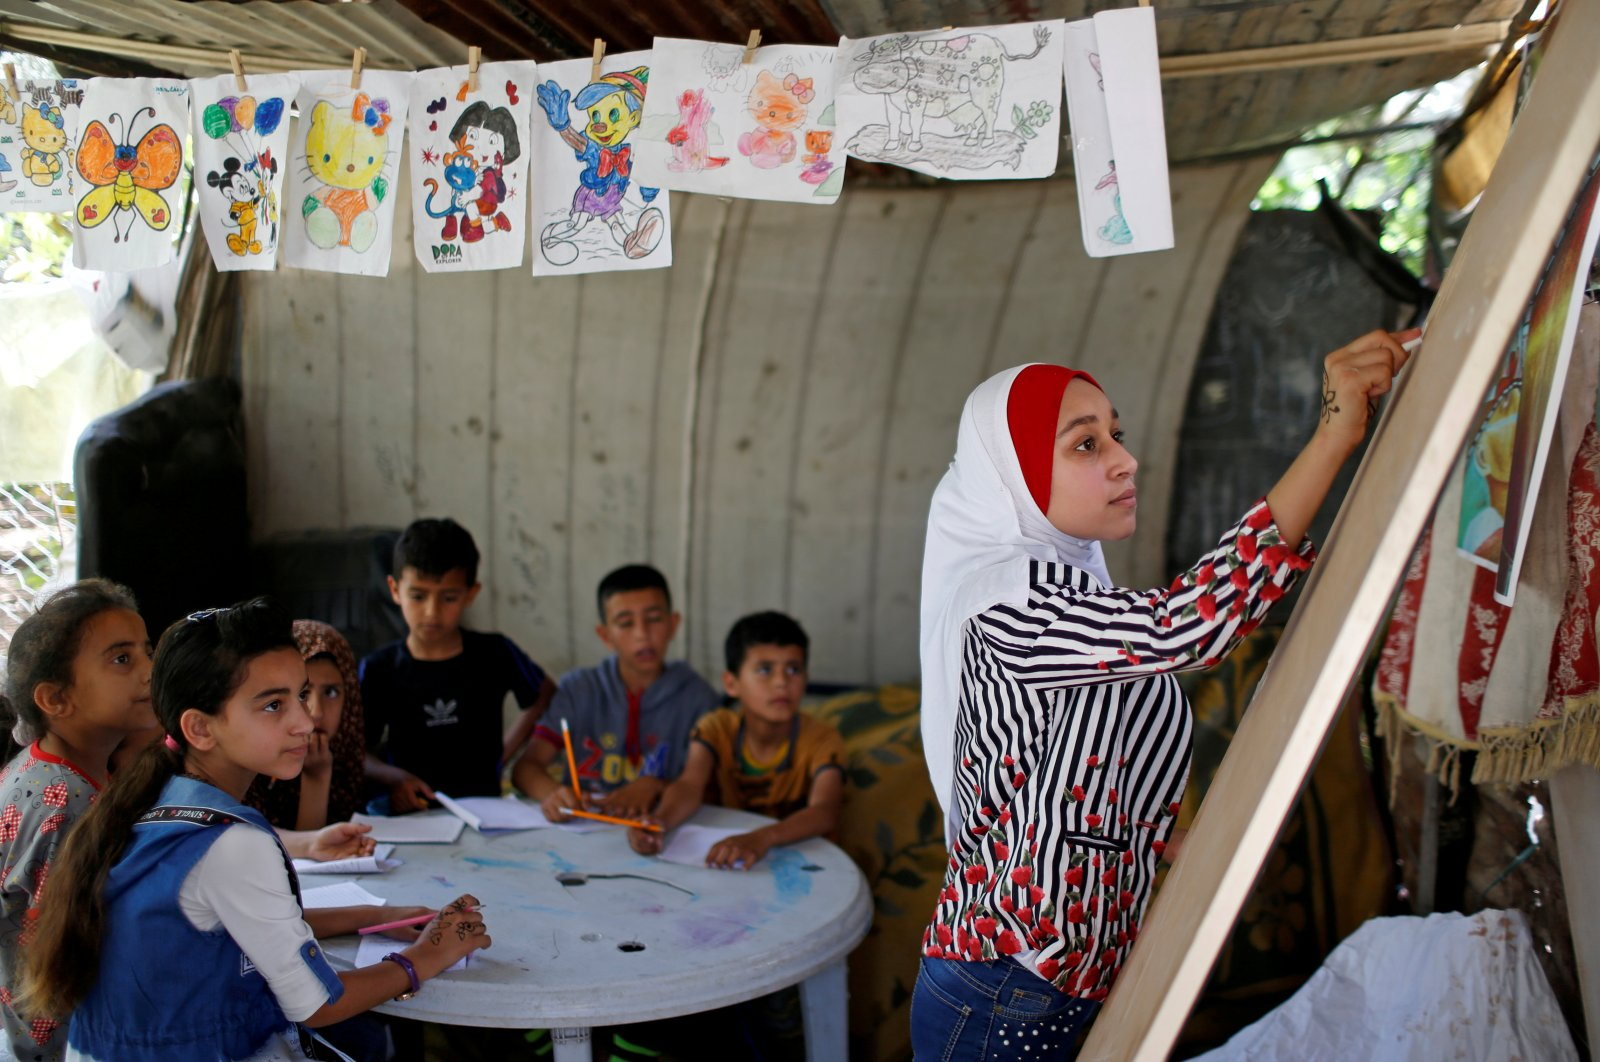 A Palestinian schoolgirl Fajr Hmaid, 13, holds Arabic language lessons for her neighbors' children as schools are shut due to the coronavirus restrictions, at her family house, Gaza, May 19, 2020.